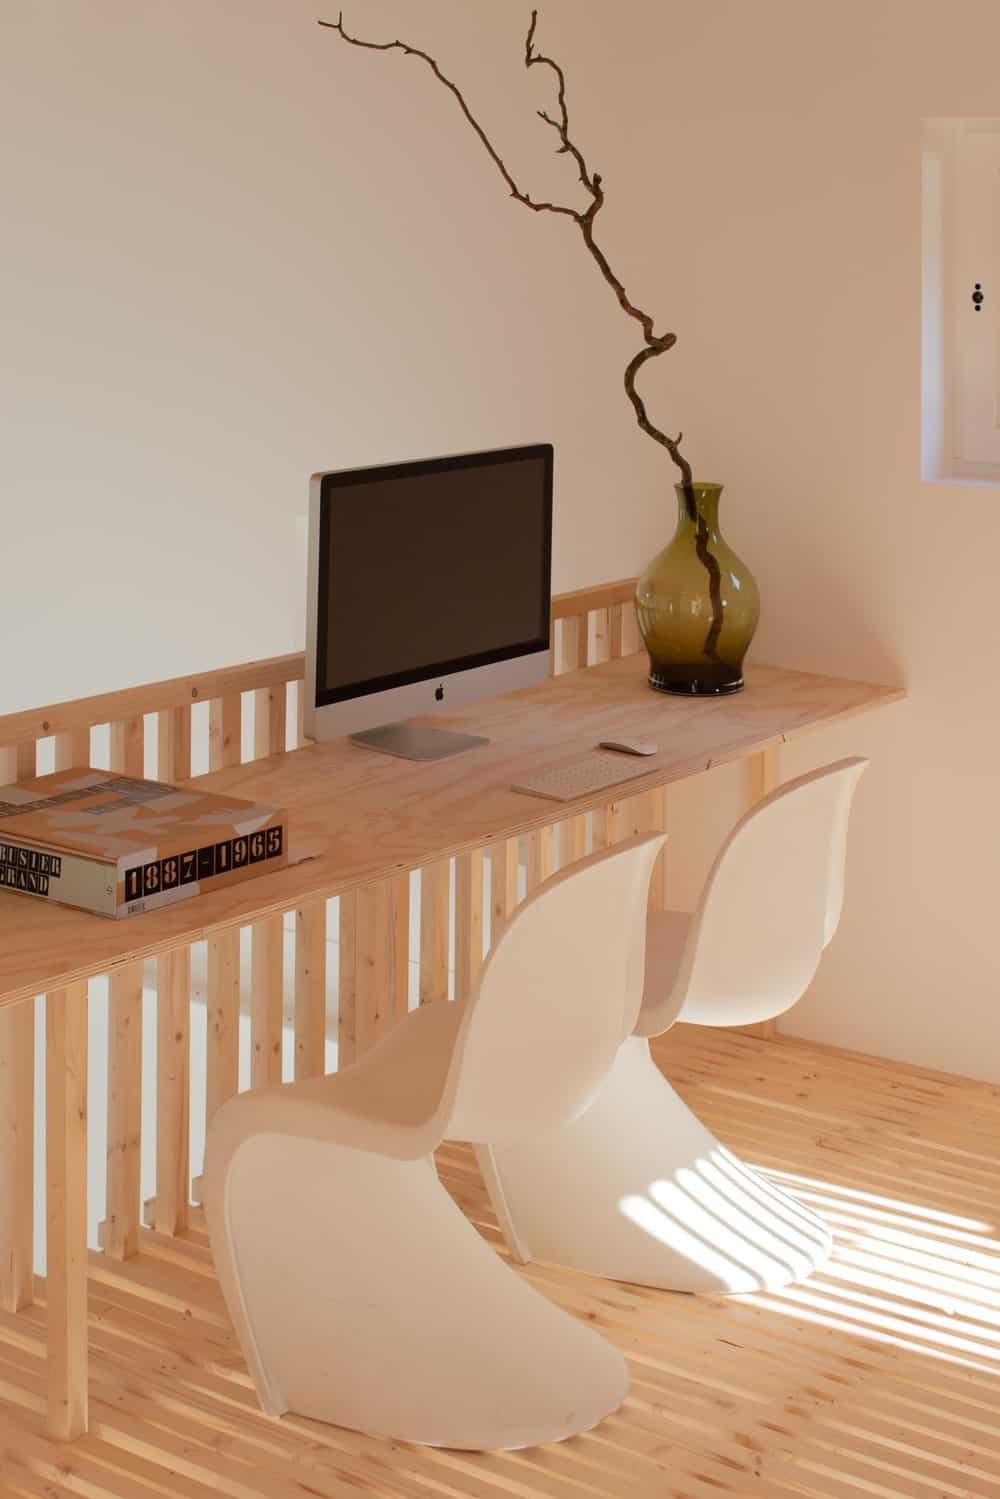 This is a close look at the home office with a wooden built-in desk attached to the wooden railing of the staircase.